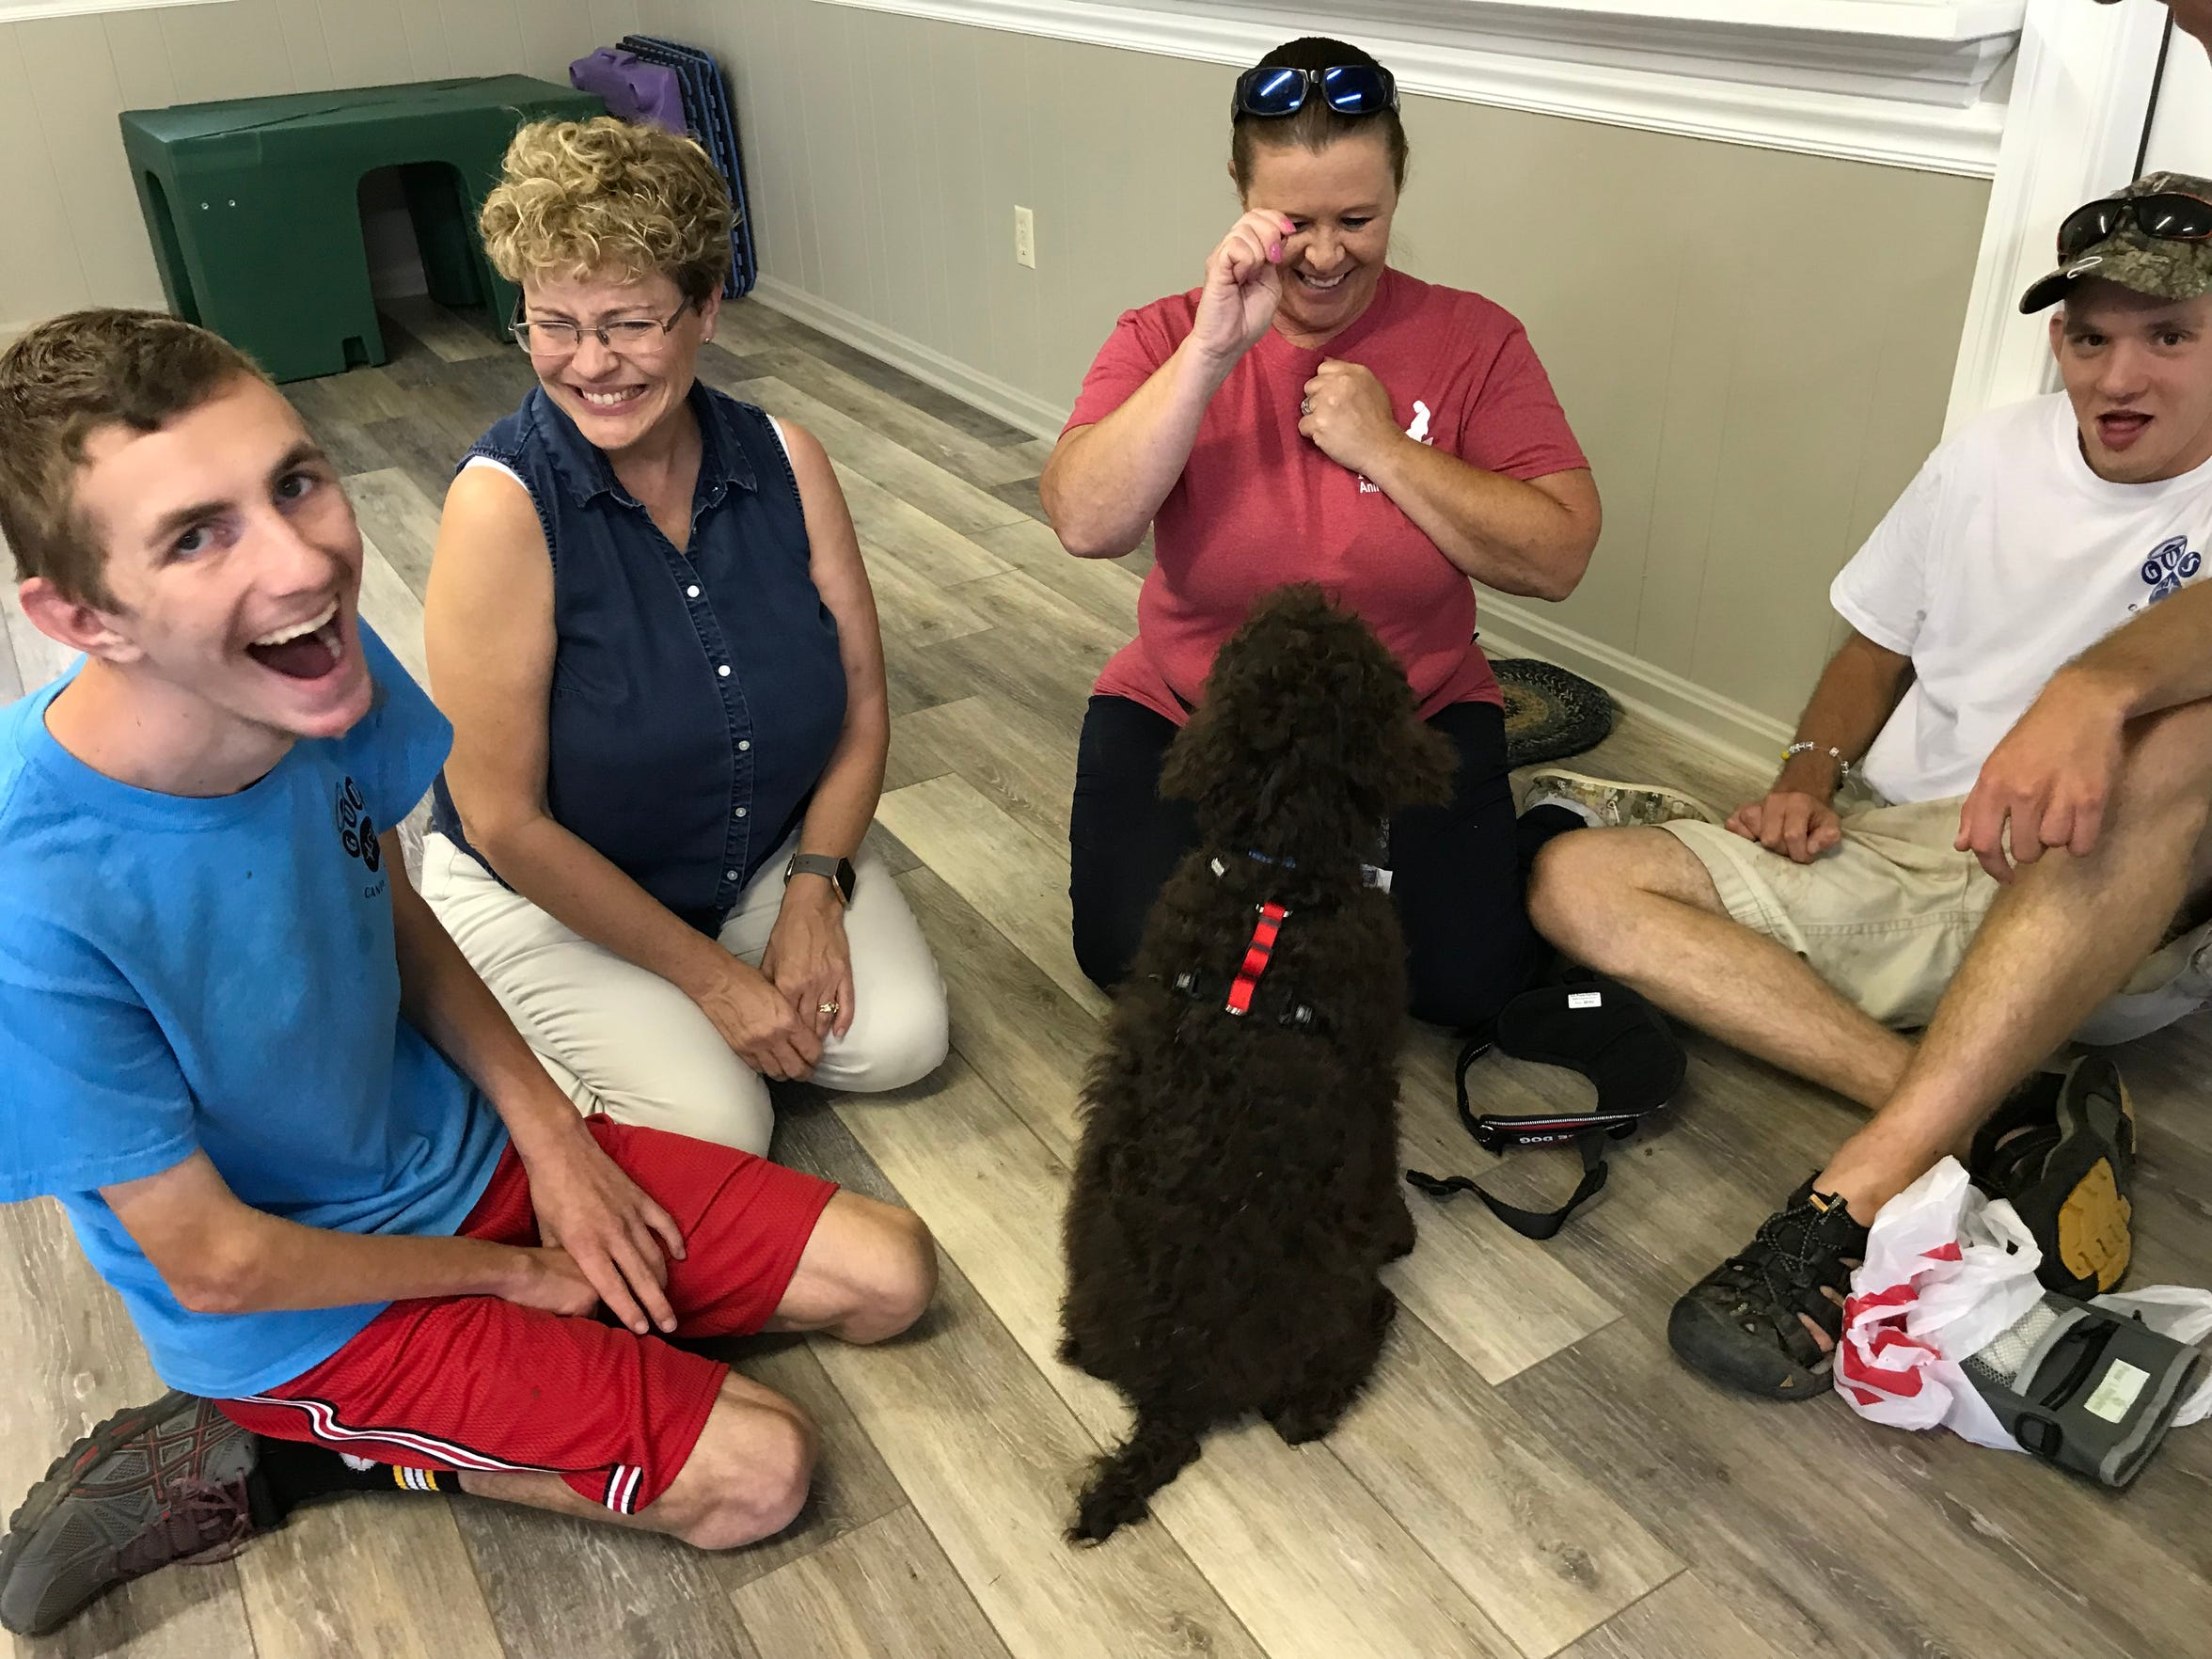 Samuel Bohlmann, Sue Bohlmann, Stacey Payne and Mcgregor Knemoller with his service dog Mace at God's Cane Angels on Tuesday, Sept. 17, 2019 in Stuarts Draft, Virginia.